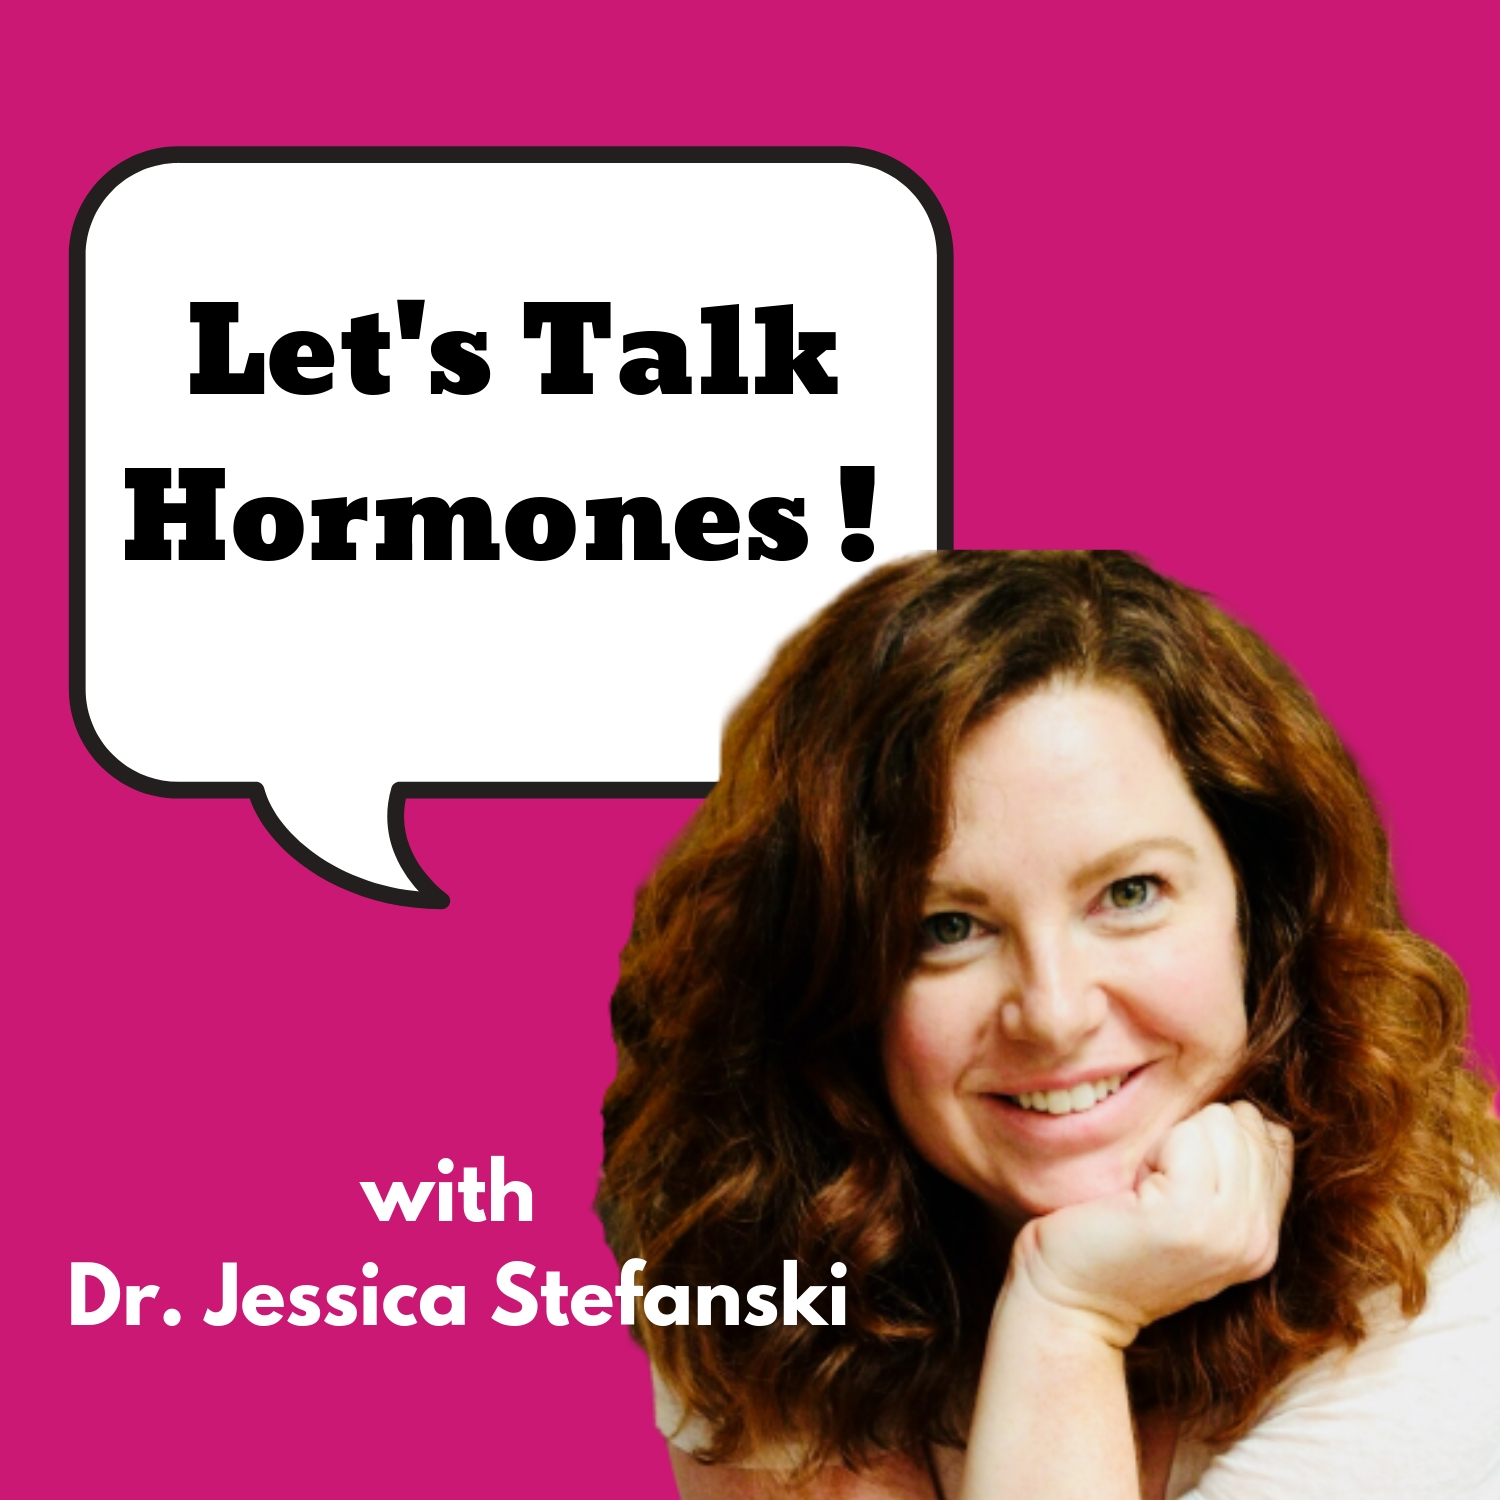 Let's Talk Hormones!